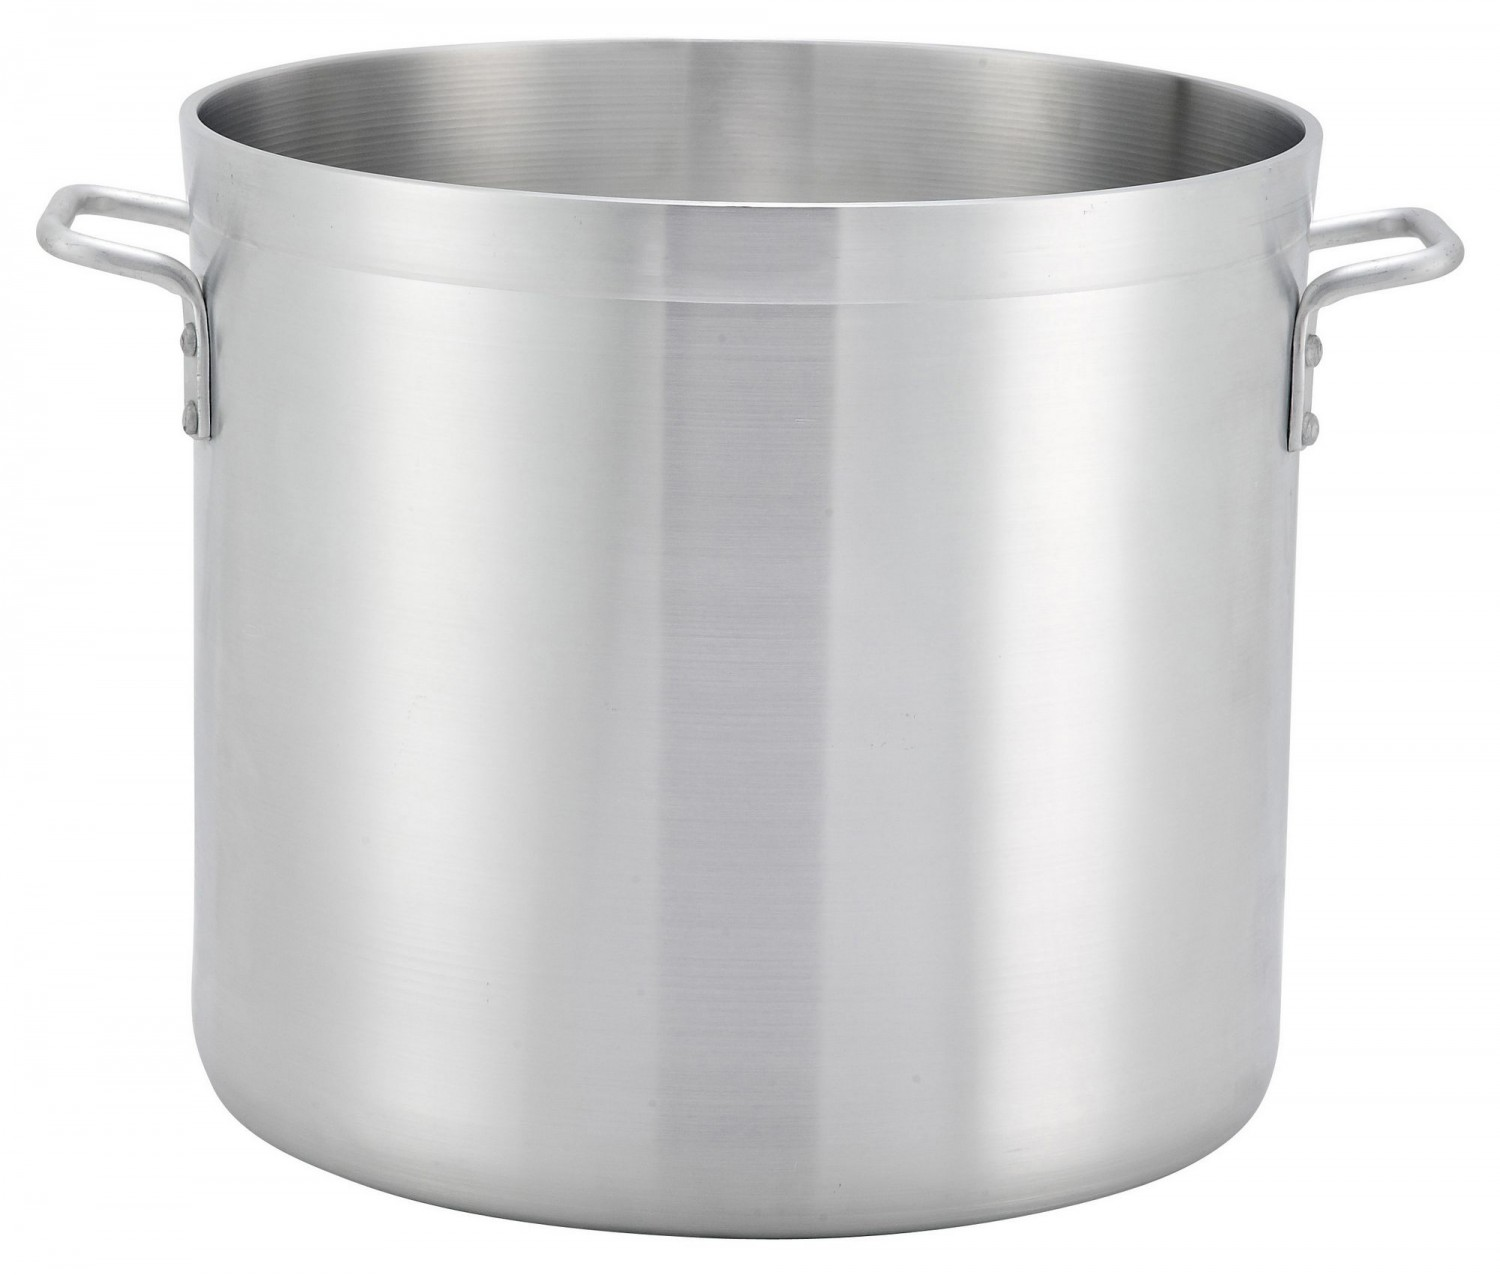 Winco ALHP-120 Precision Aluminum Stock Pot 120 Qt.